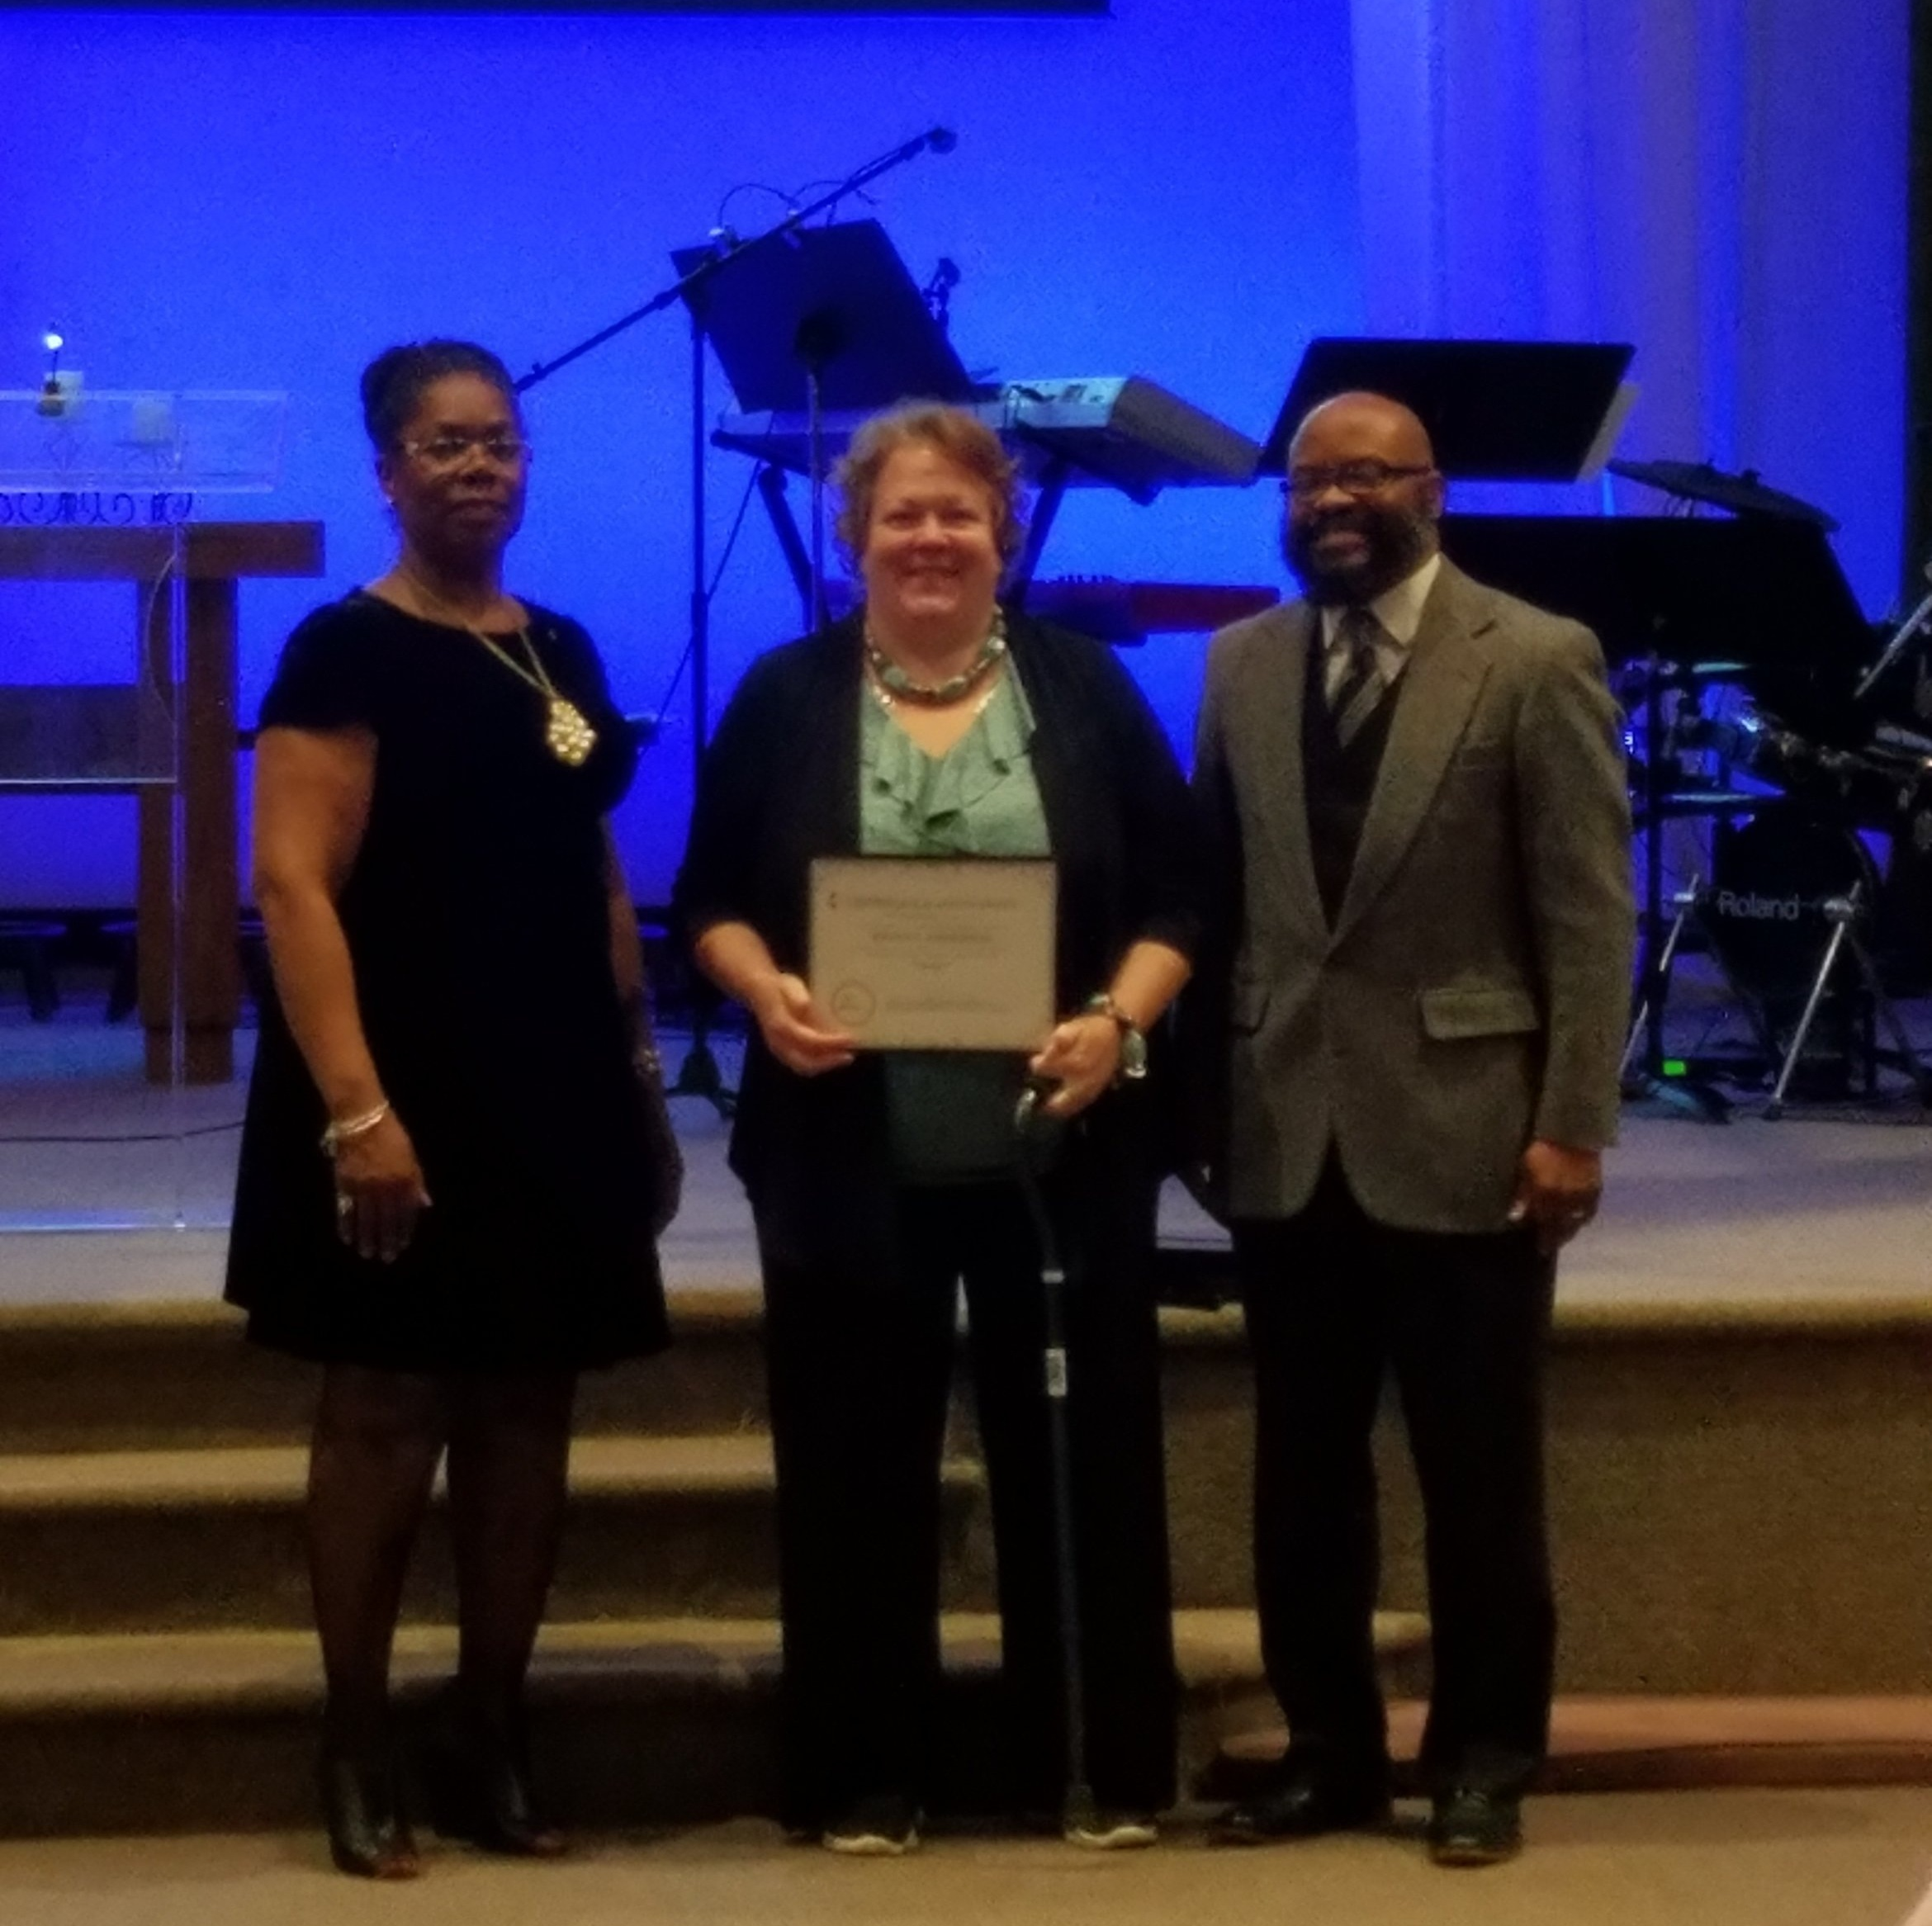 CONGRATULATIONS TO BRENDA ANDERSON OUR YOUTH DIRECTOR ON RECEIVING THE OUTSTANDING YOUTH DIRECTOR AWARD BY THE WILMINGTON DISTRICT CONFERENCE ON MARCH 18TH AT CORNERSTONE UMC.